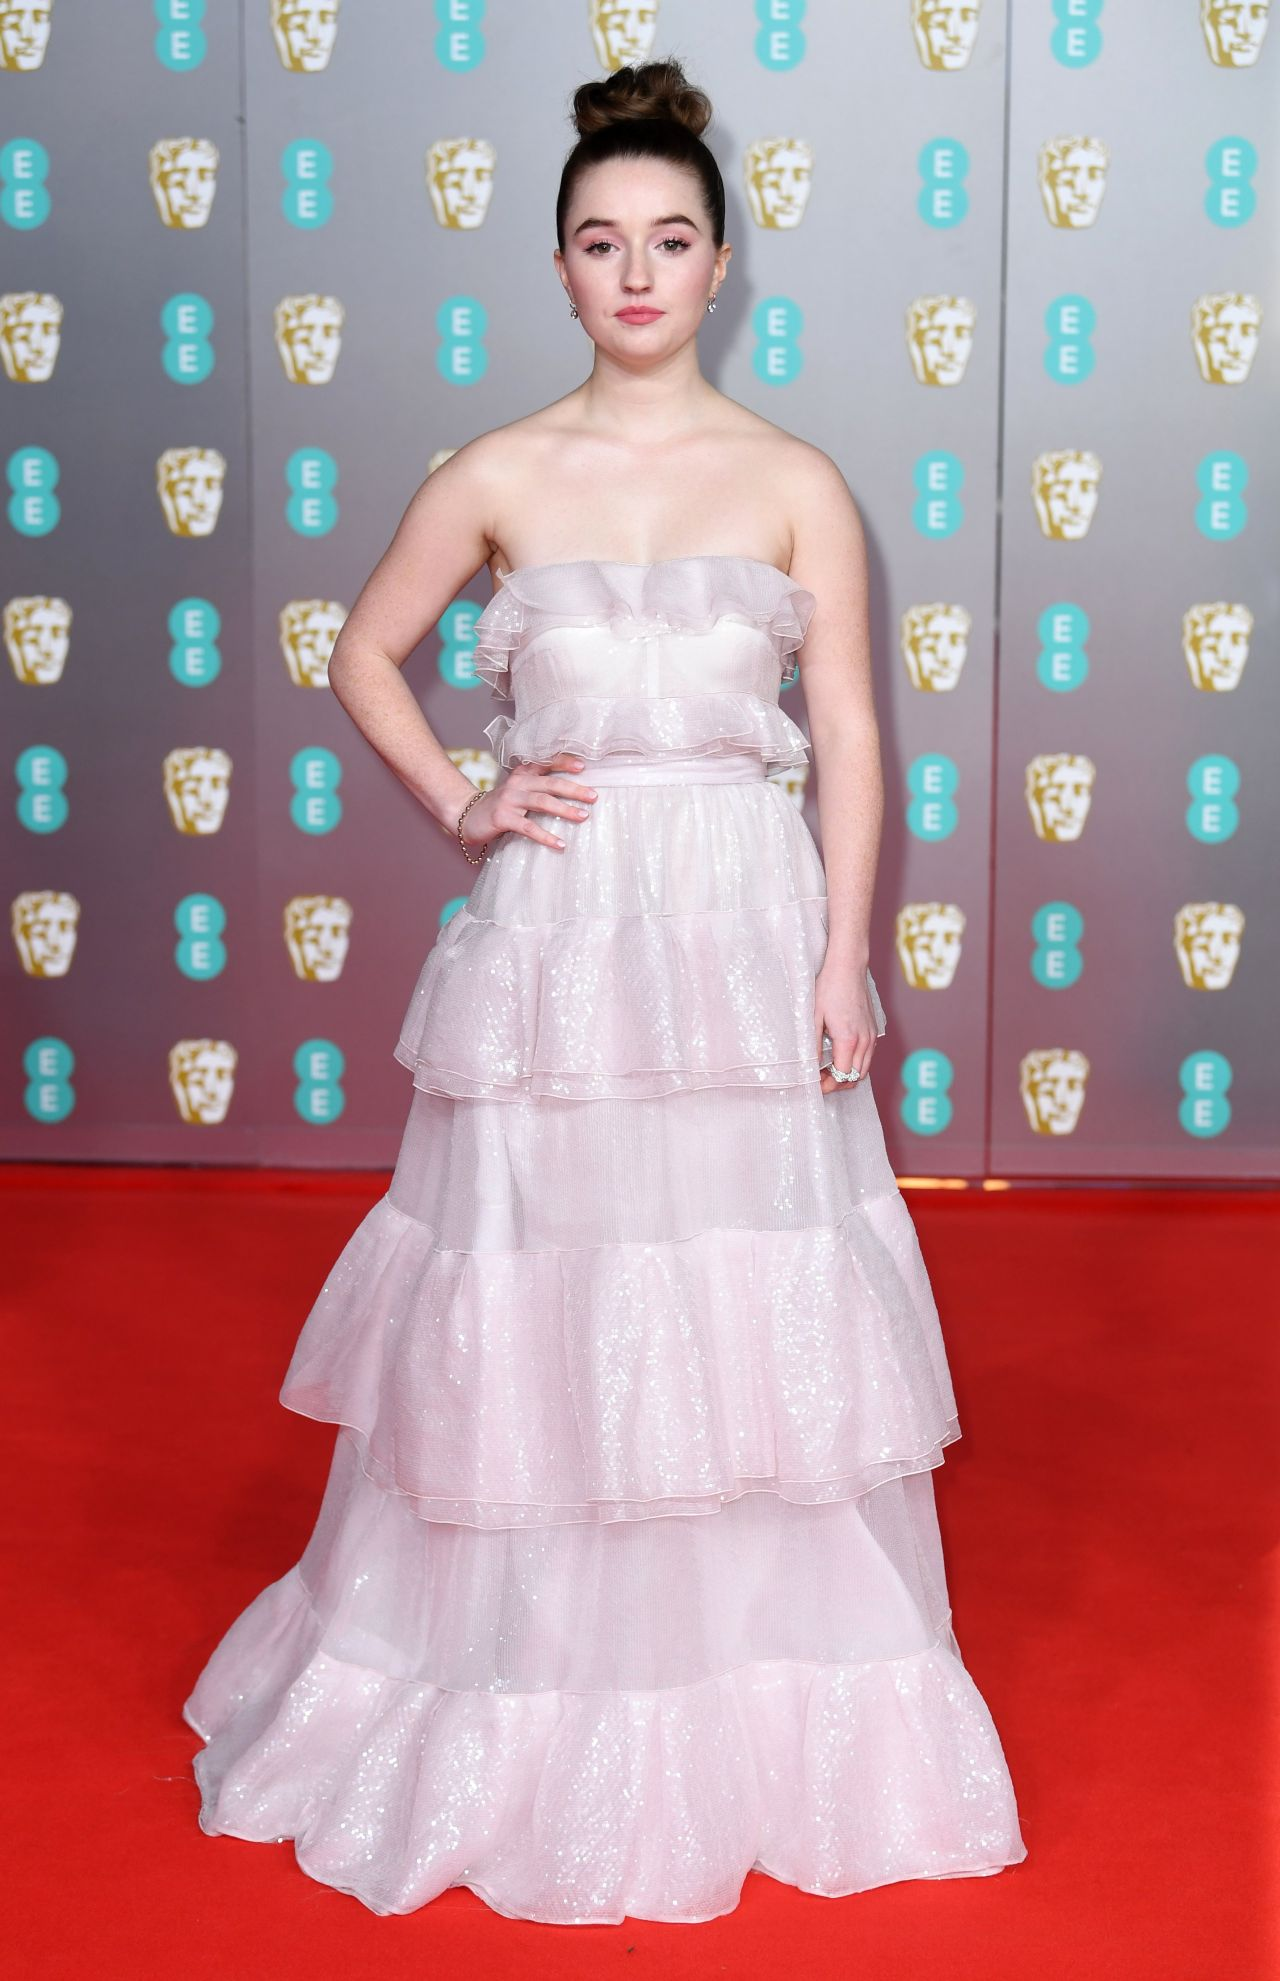 kaitlyn-dever-in-miu-miu-2020-ee-british-academy-film-awards